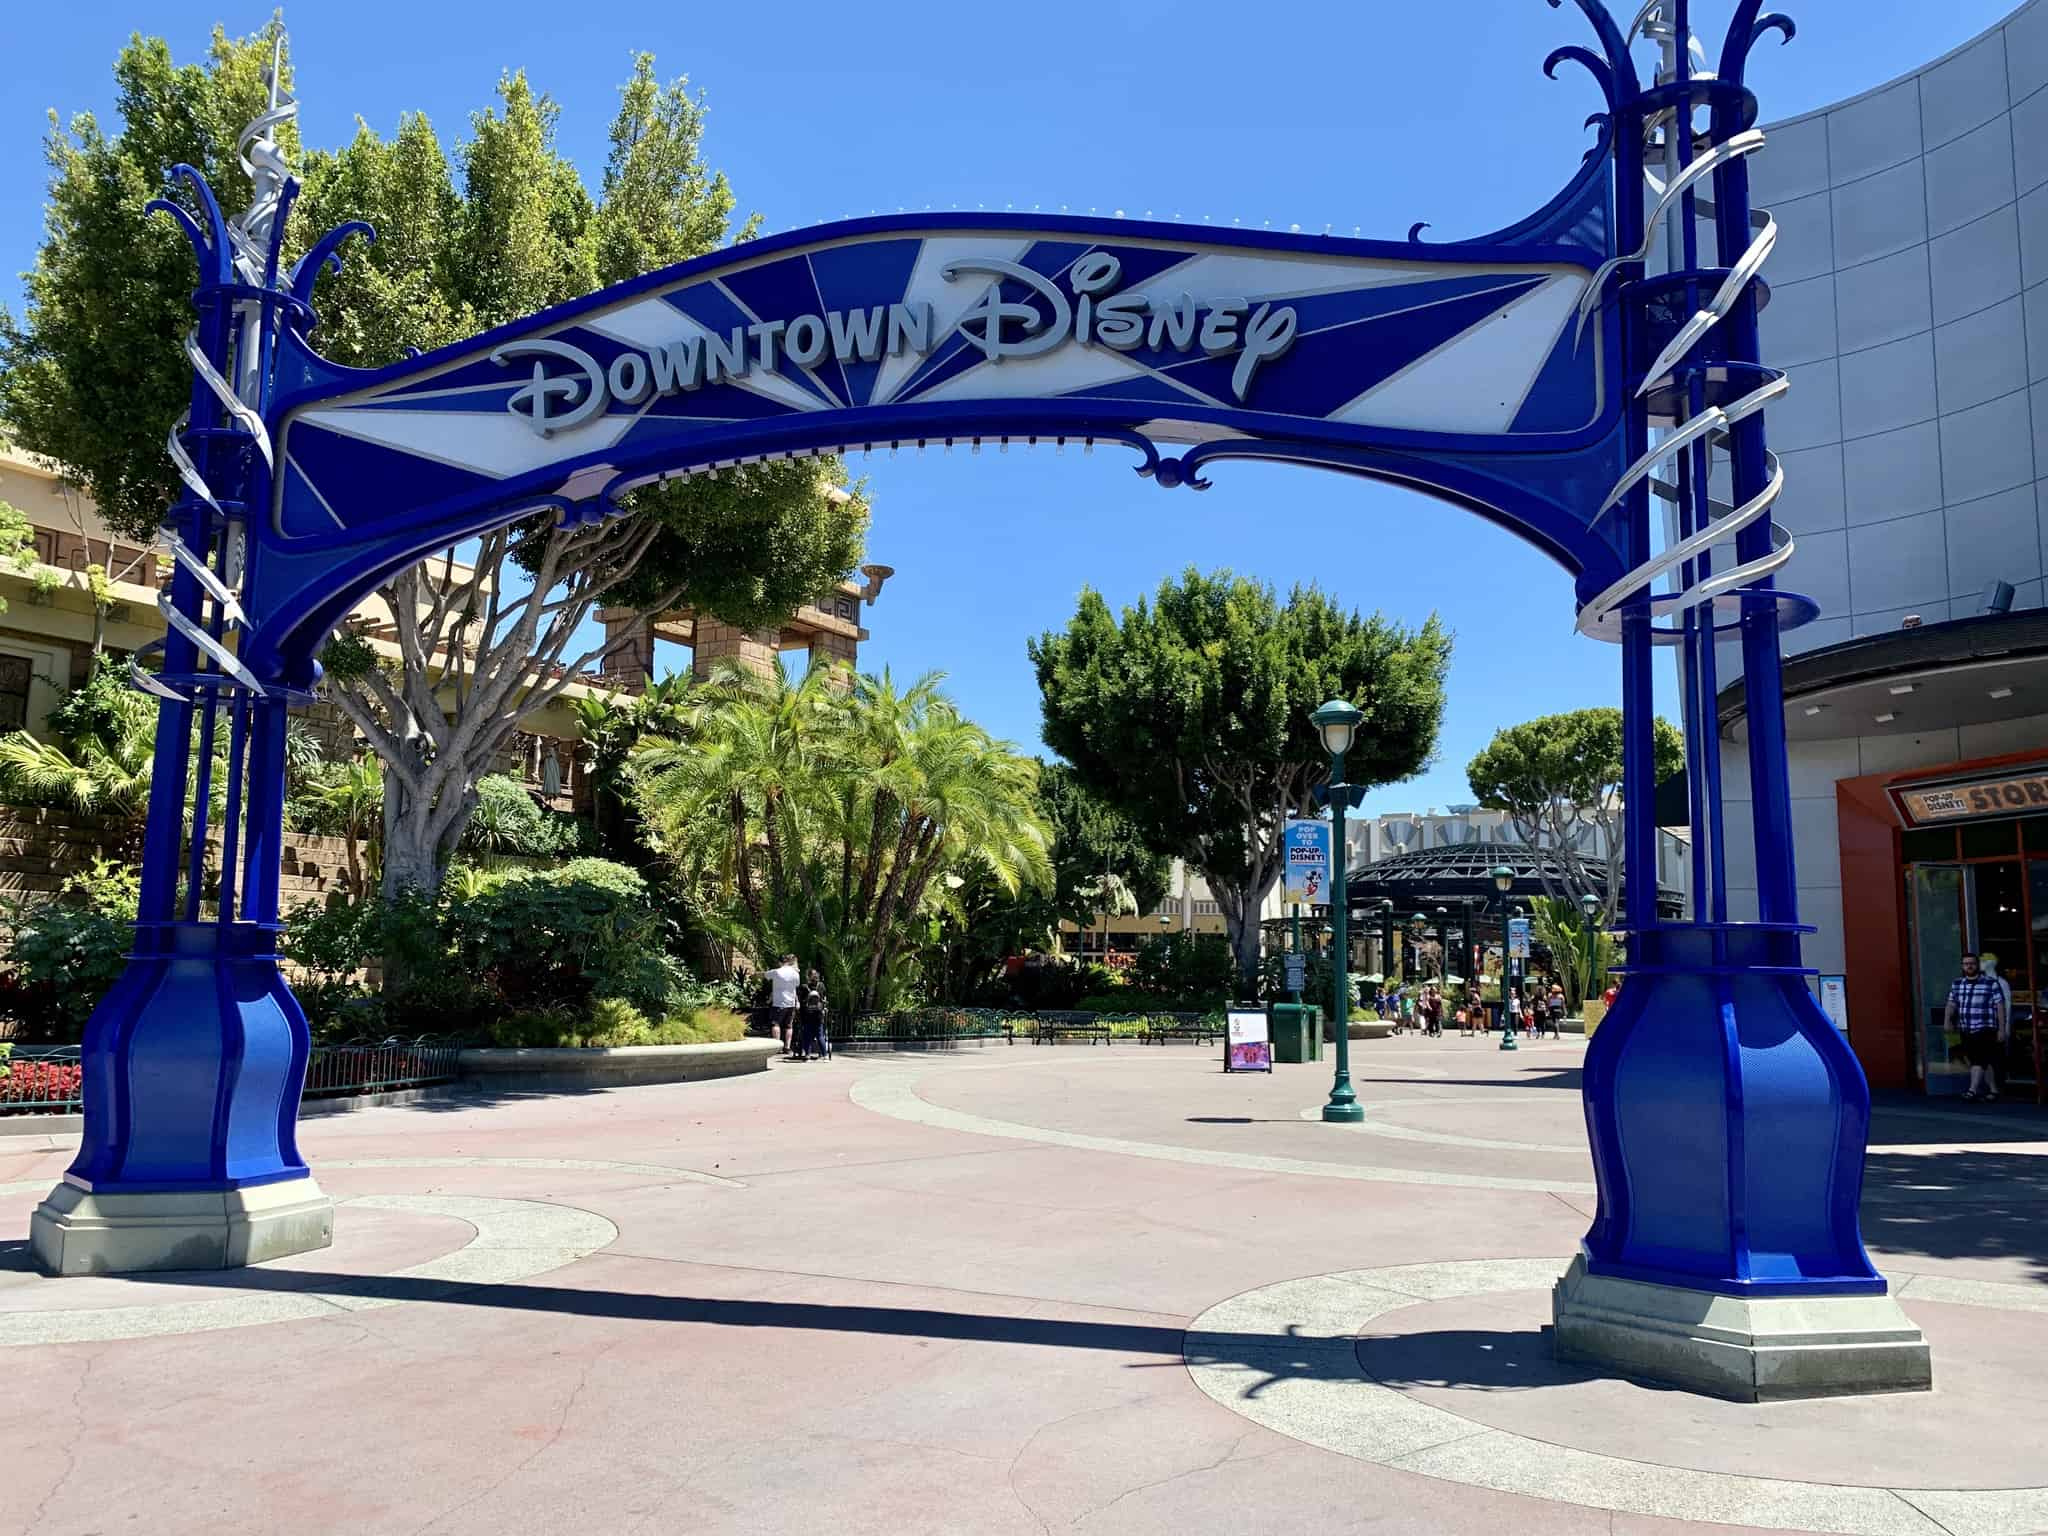 Downtown Disney expansion into California Adventure begins Nov. 19